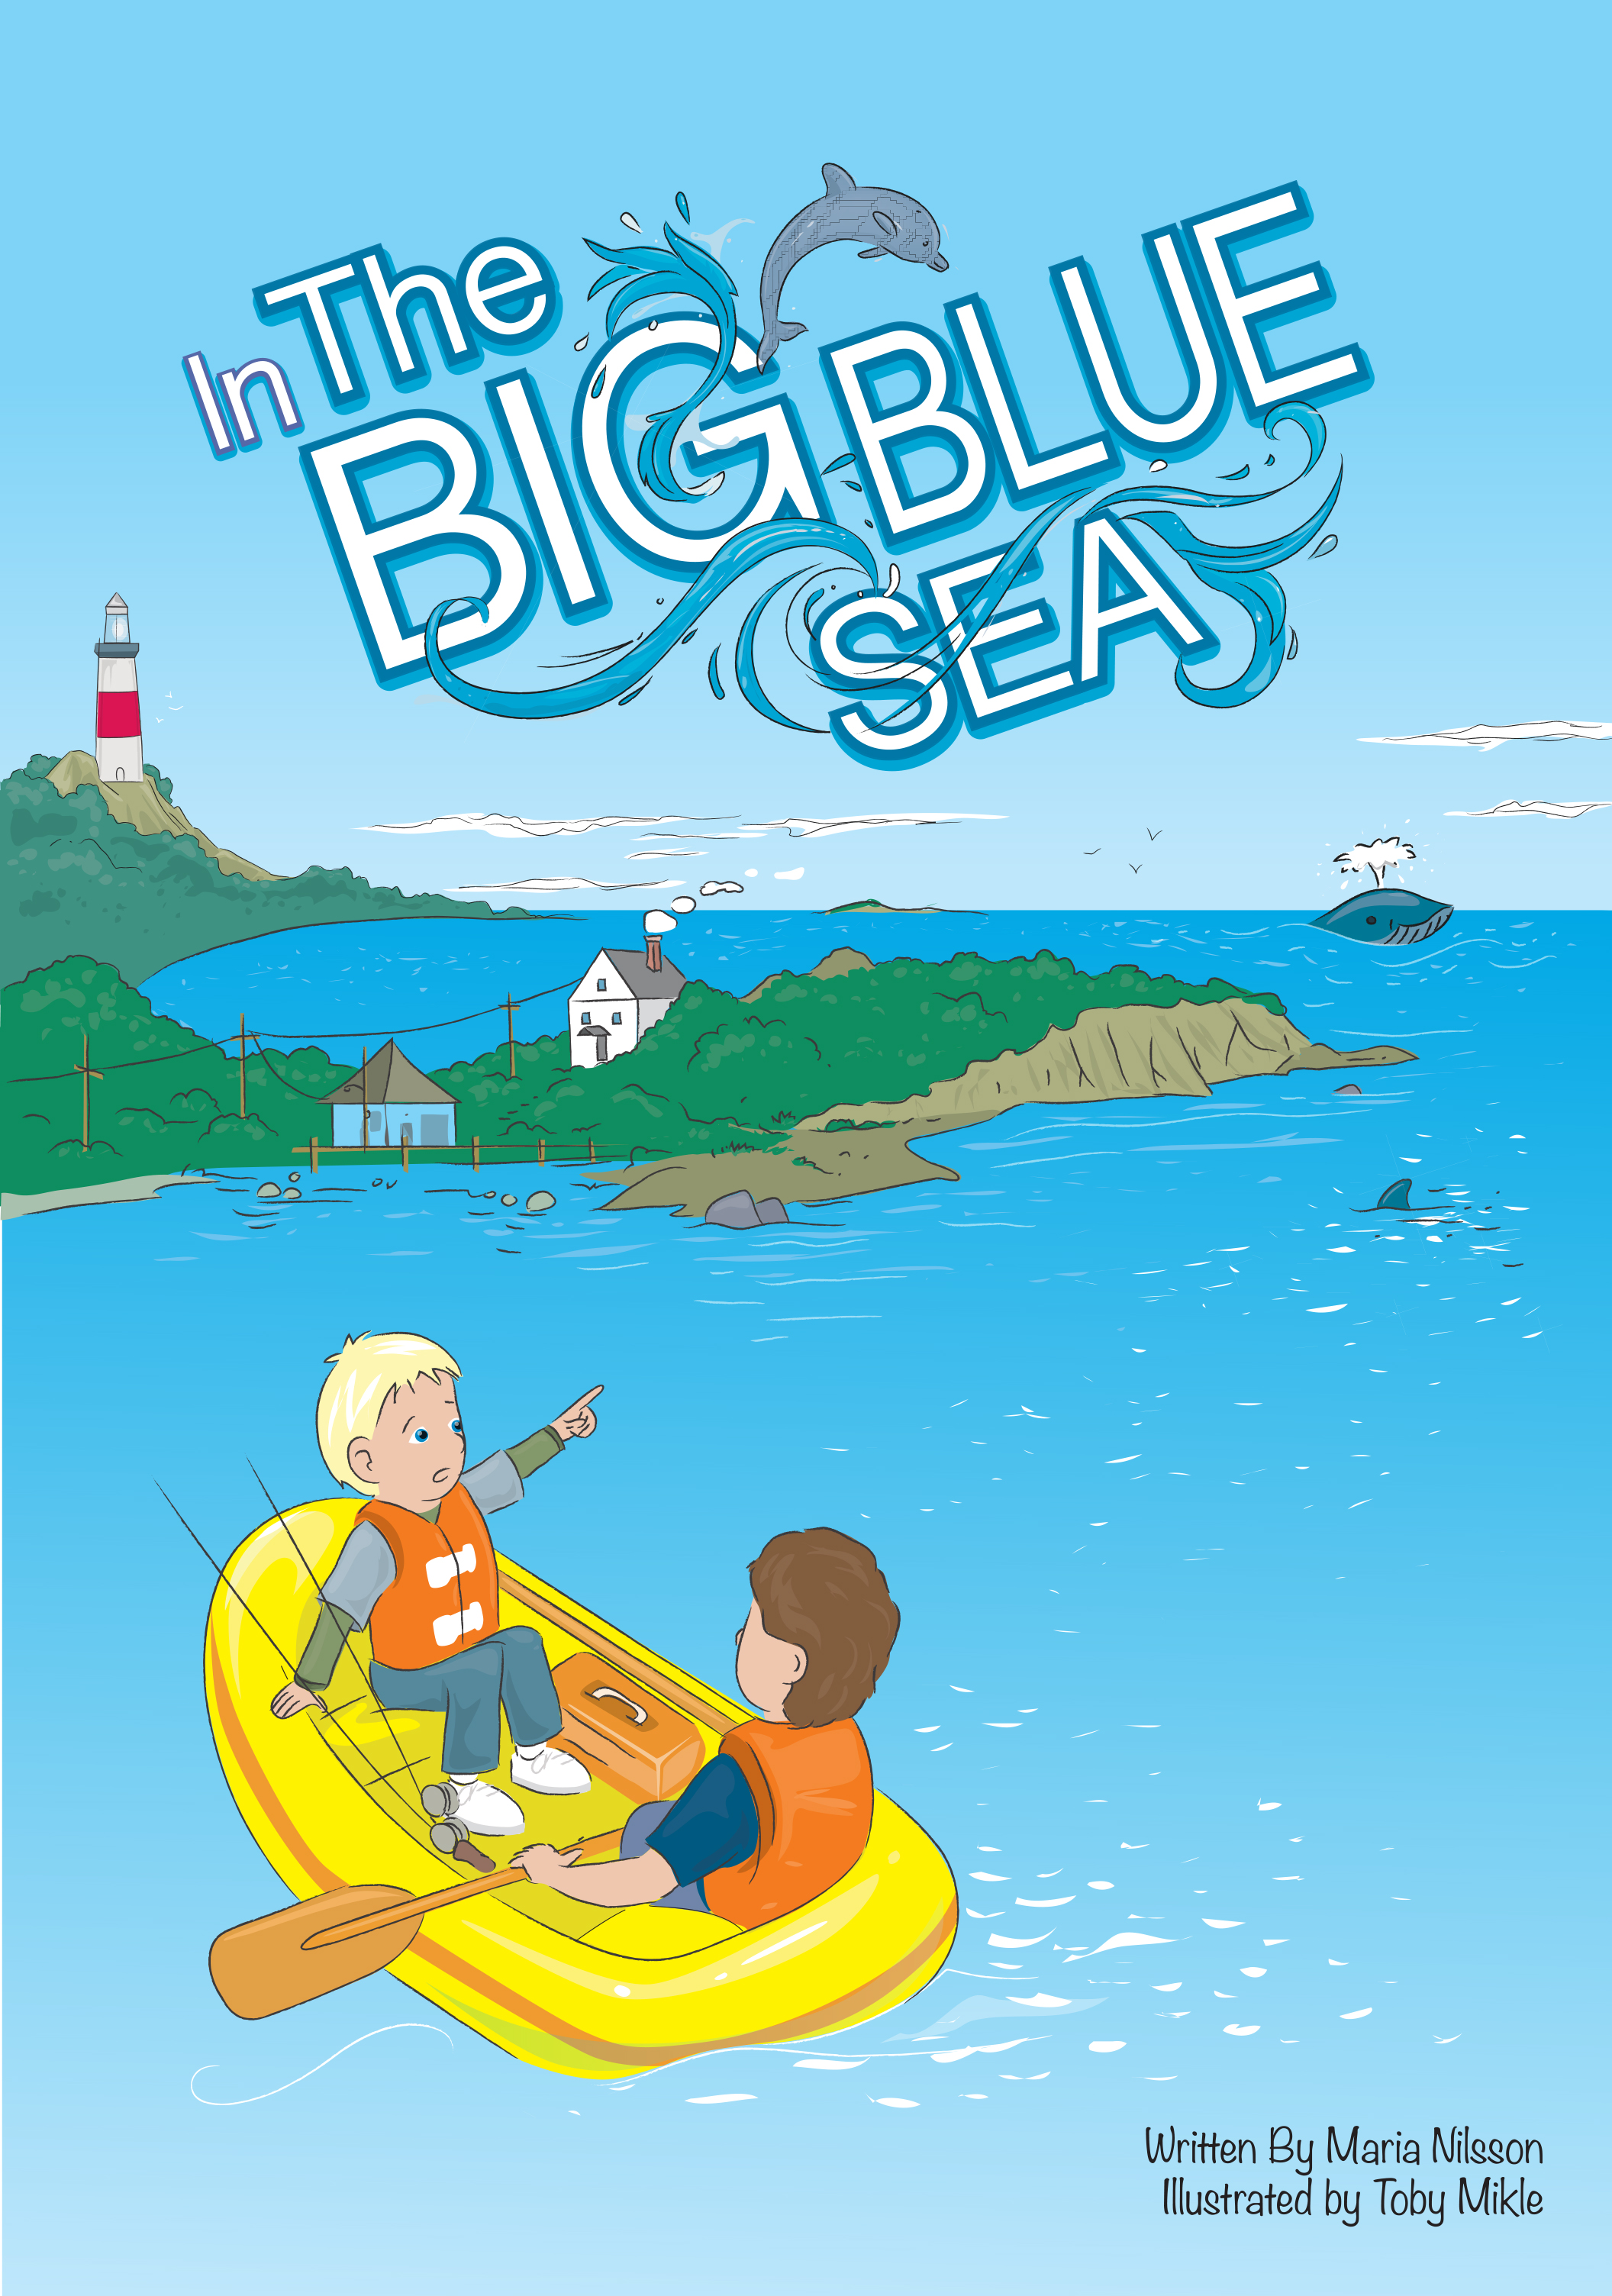 This is the bright cover of the big blue sea which is an adventure book about two children who are on a raft in t =he ocean